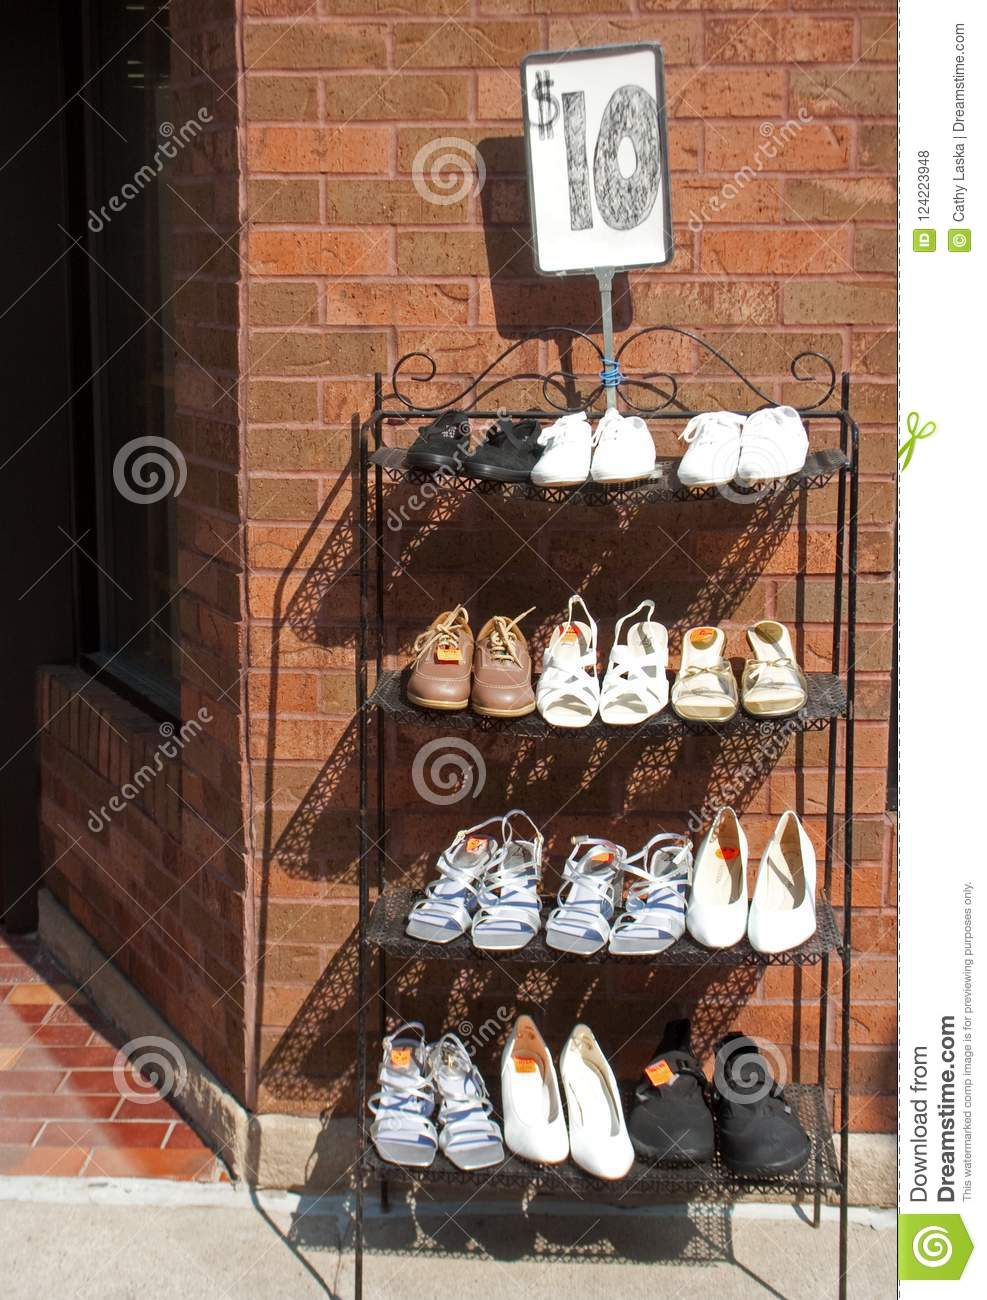 415fcab9eb2 Shoe Rack Outside Shoe Store Editorial Stock Photo - Image of retail ...